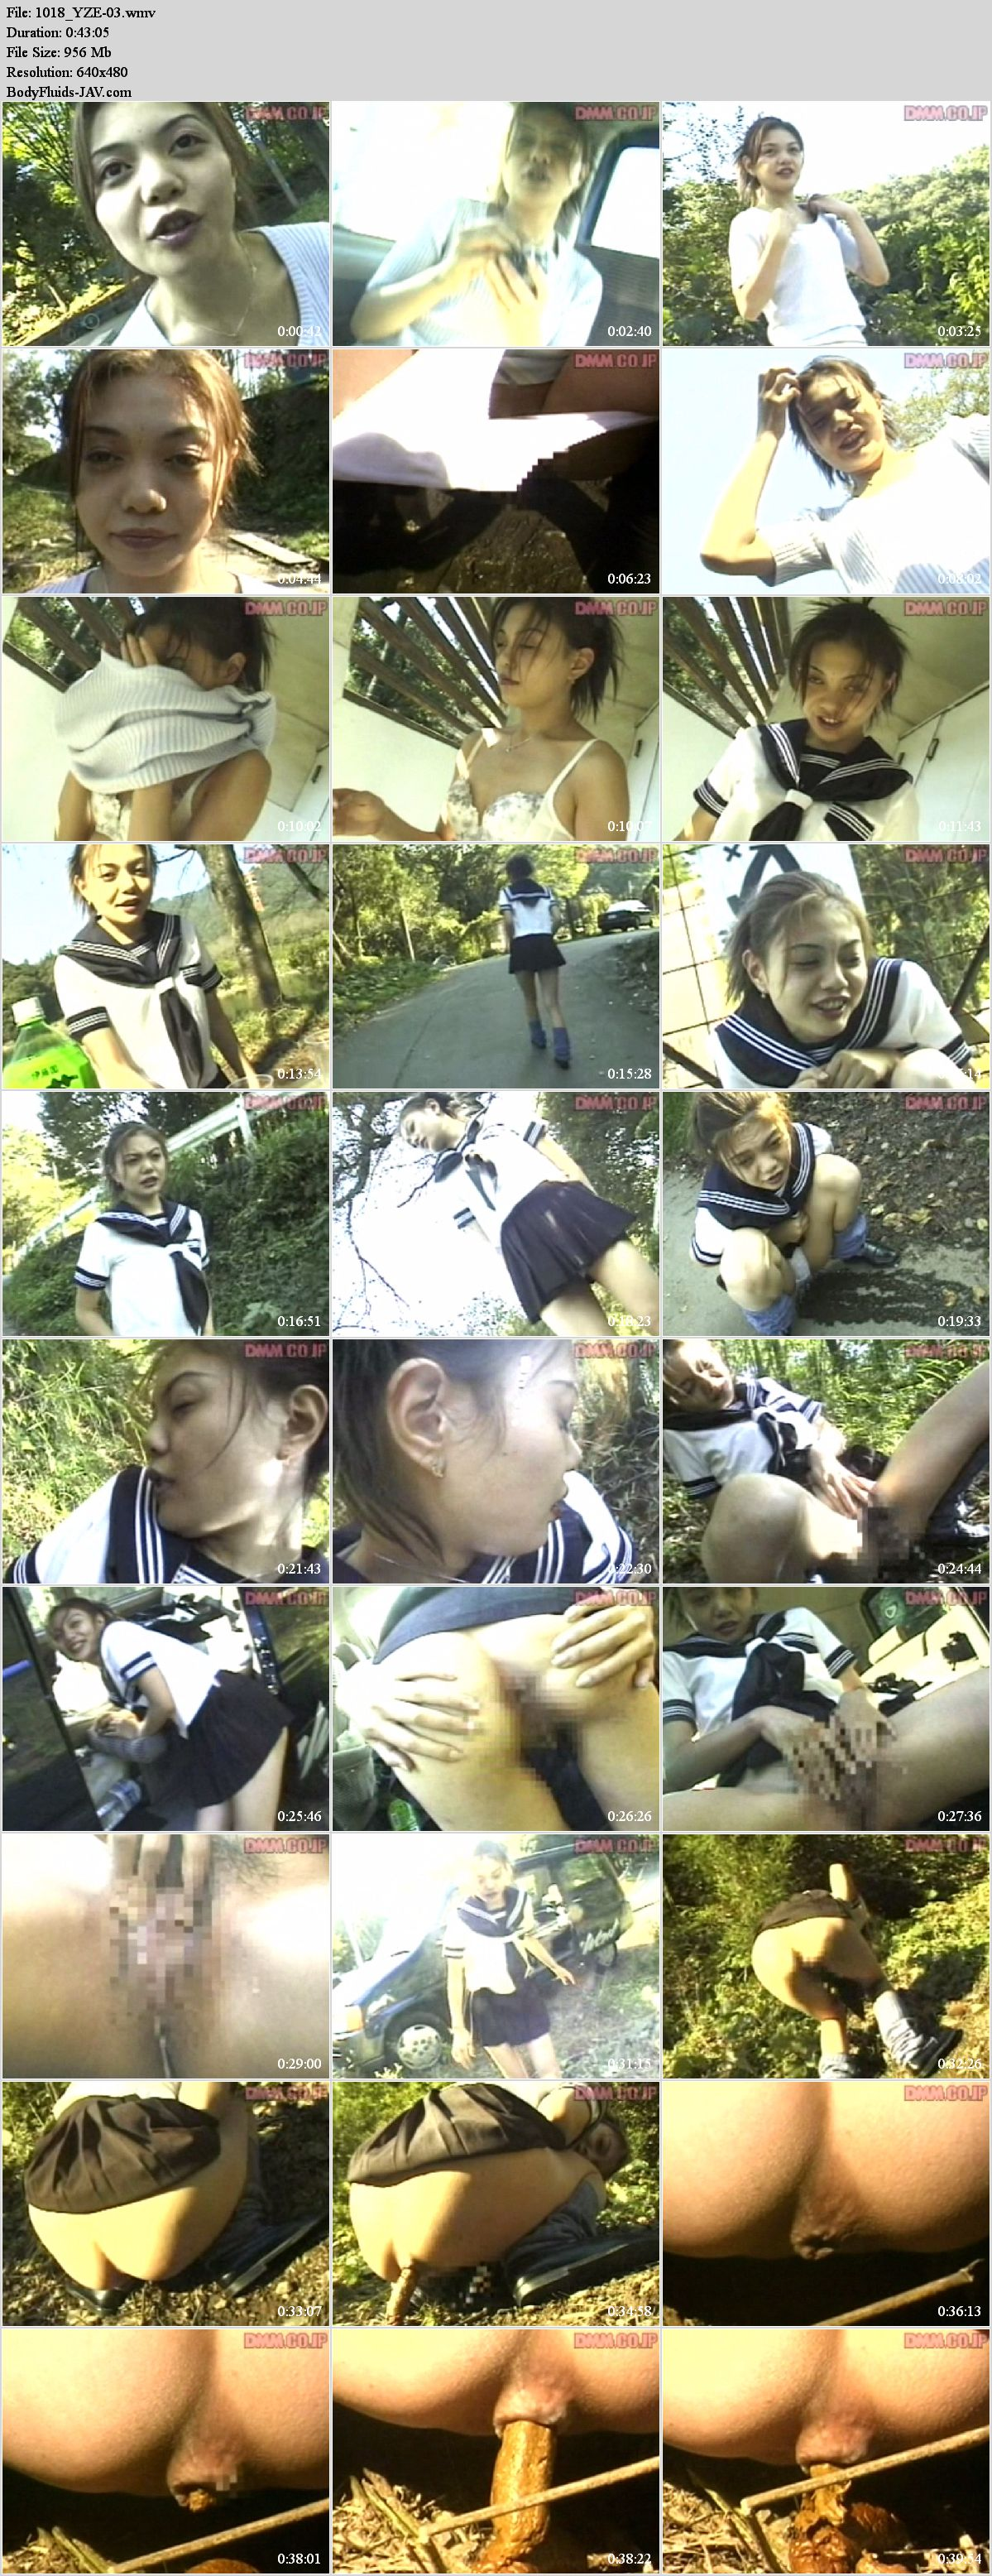 YZE-03 Schoolgirl Yoko peeing and pooping on outdoor.